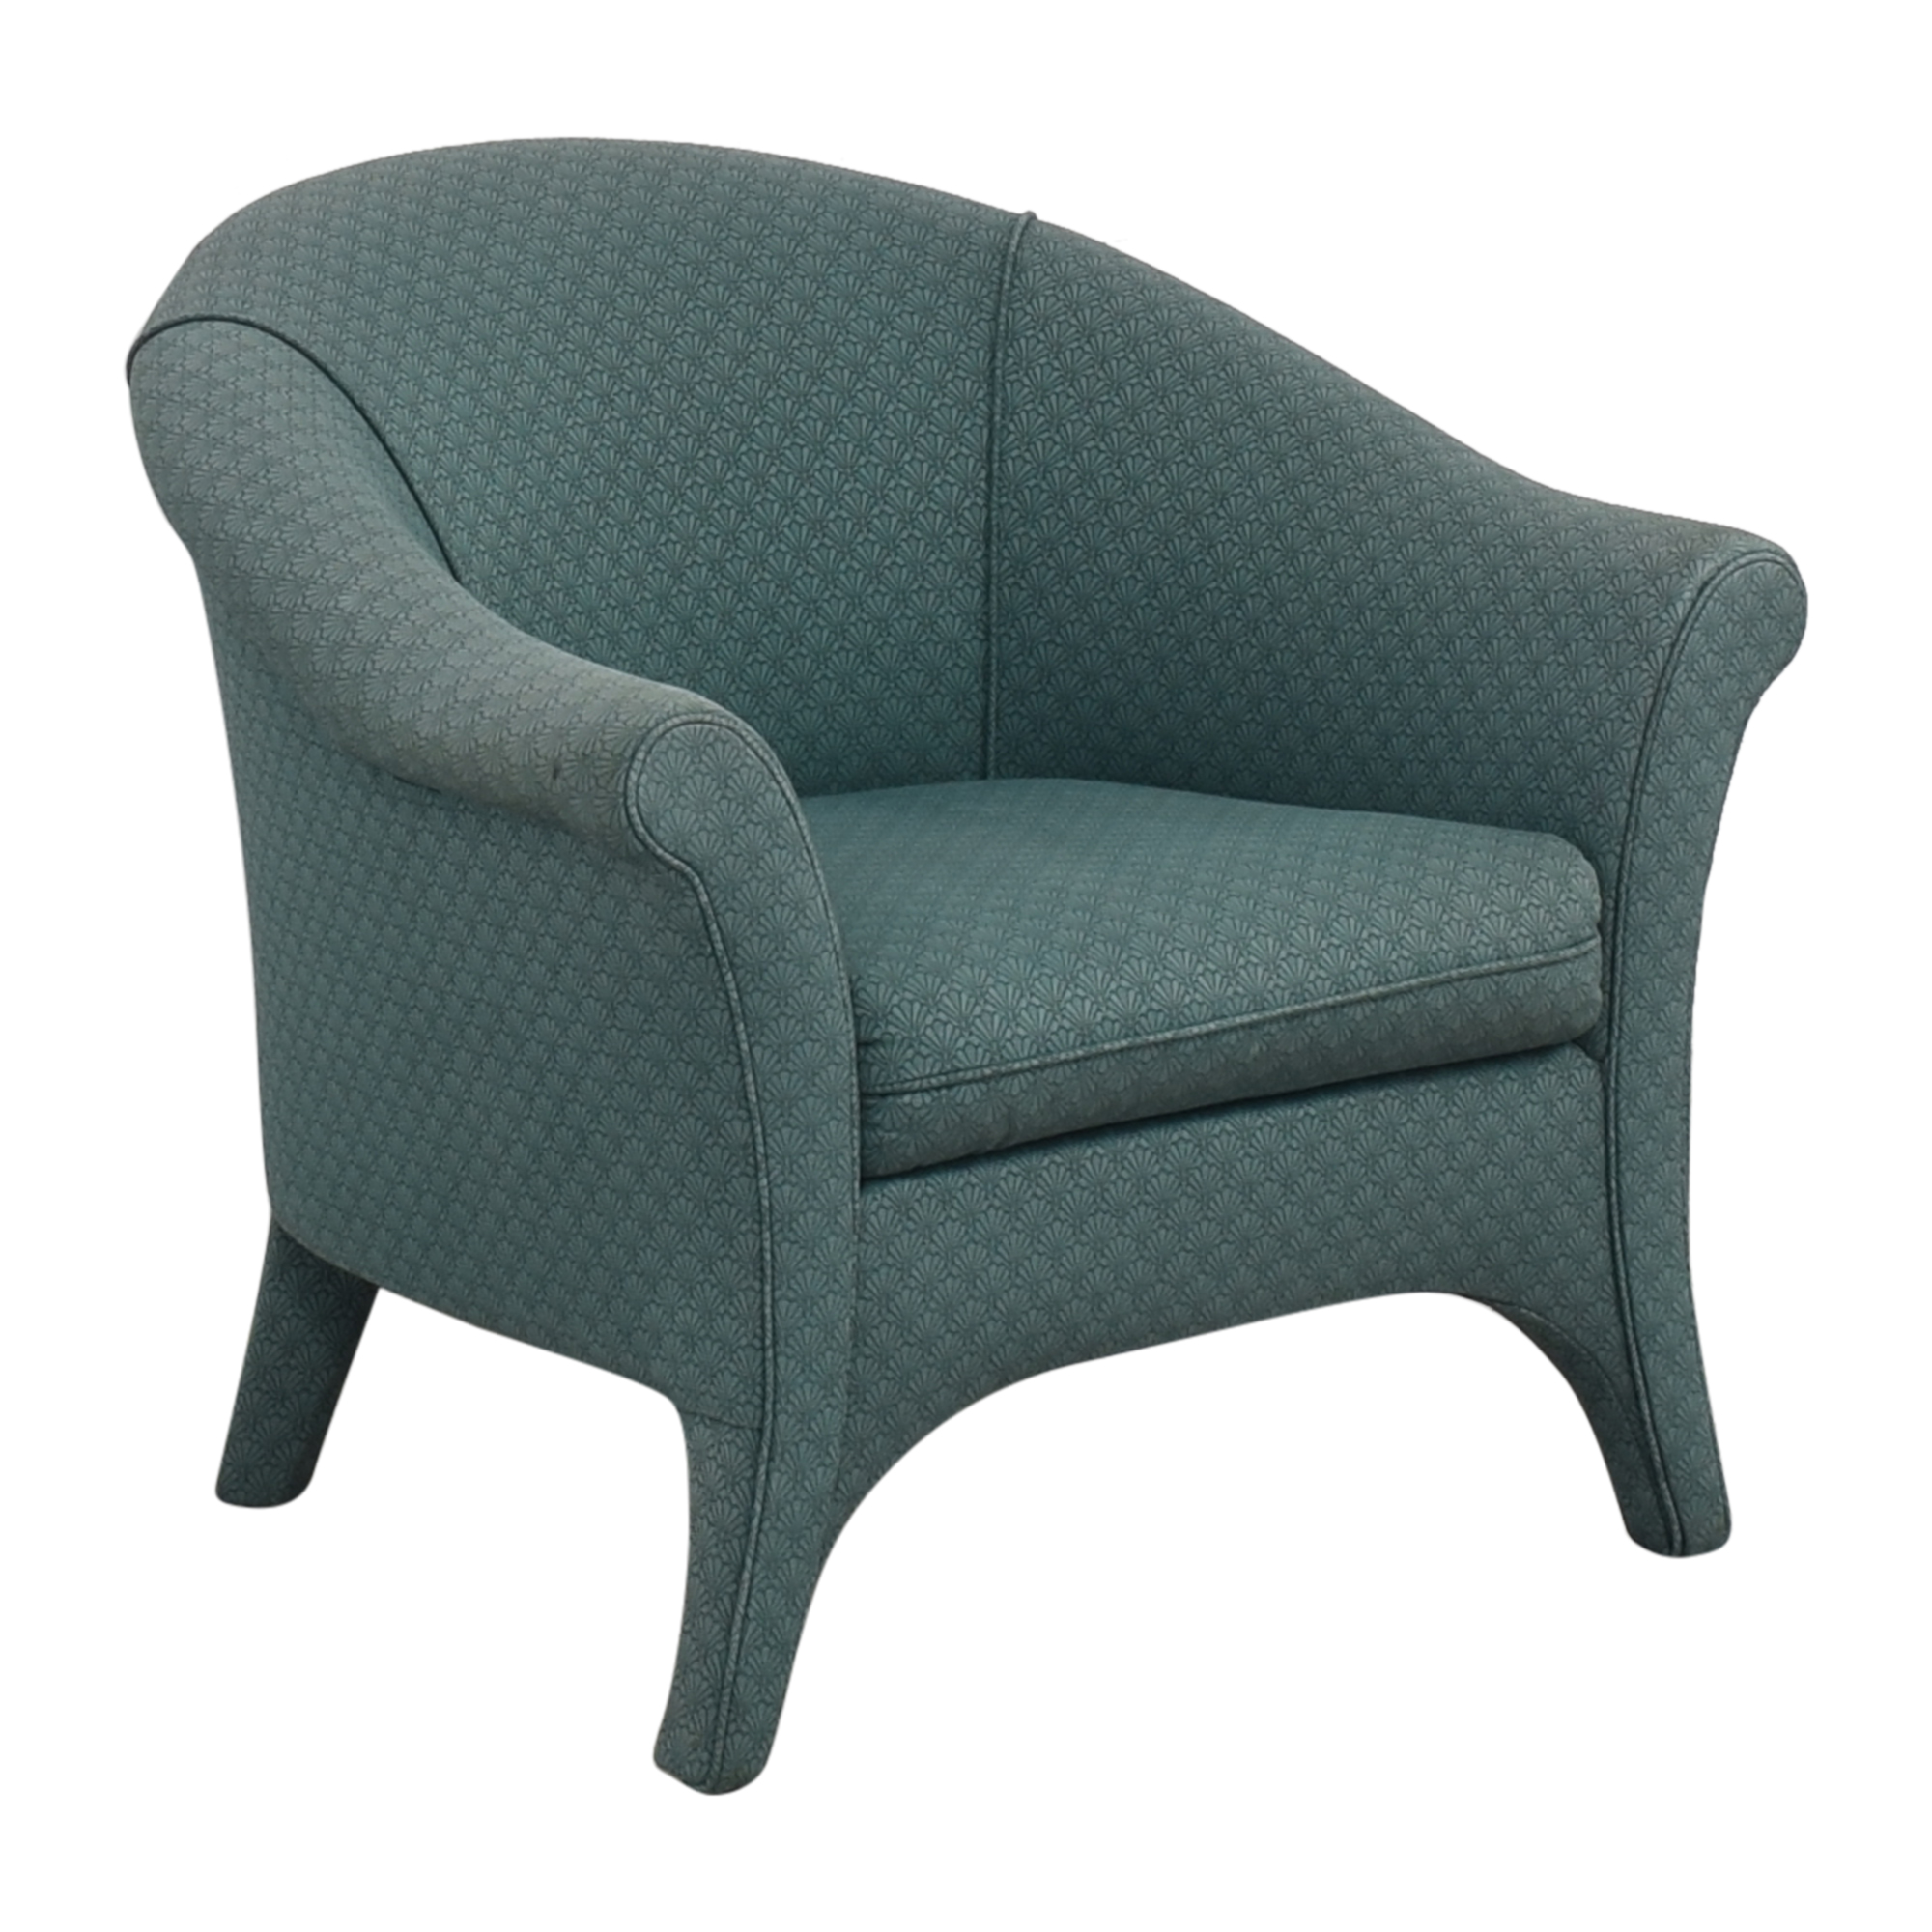 shop Crate & Barrel Upholstered Armchair Crate & Barrel Accent Chairs